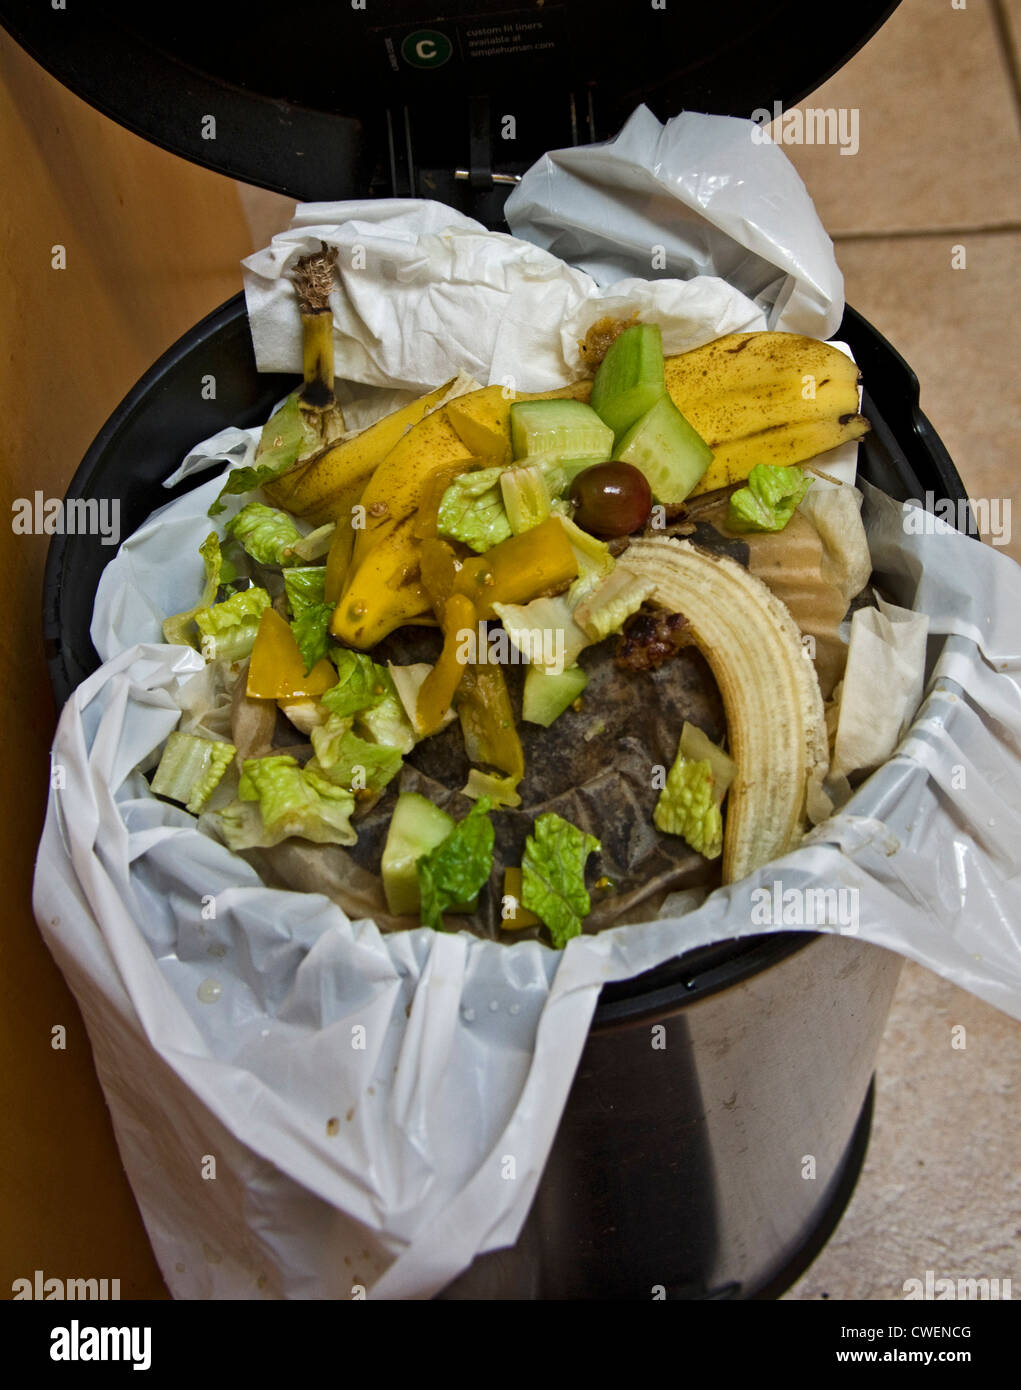 Full garbage can with organic household waste recyclables - Stock Image